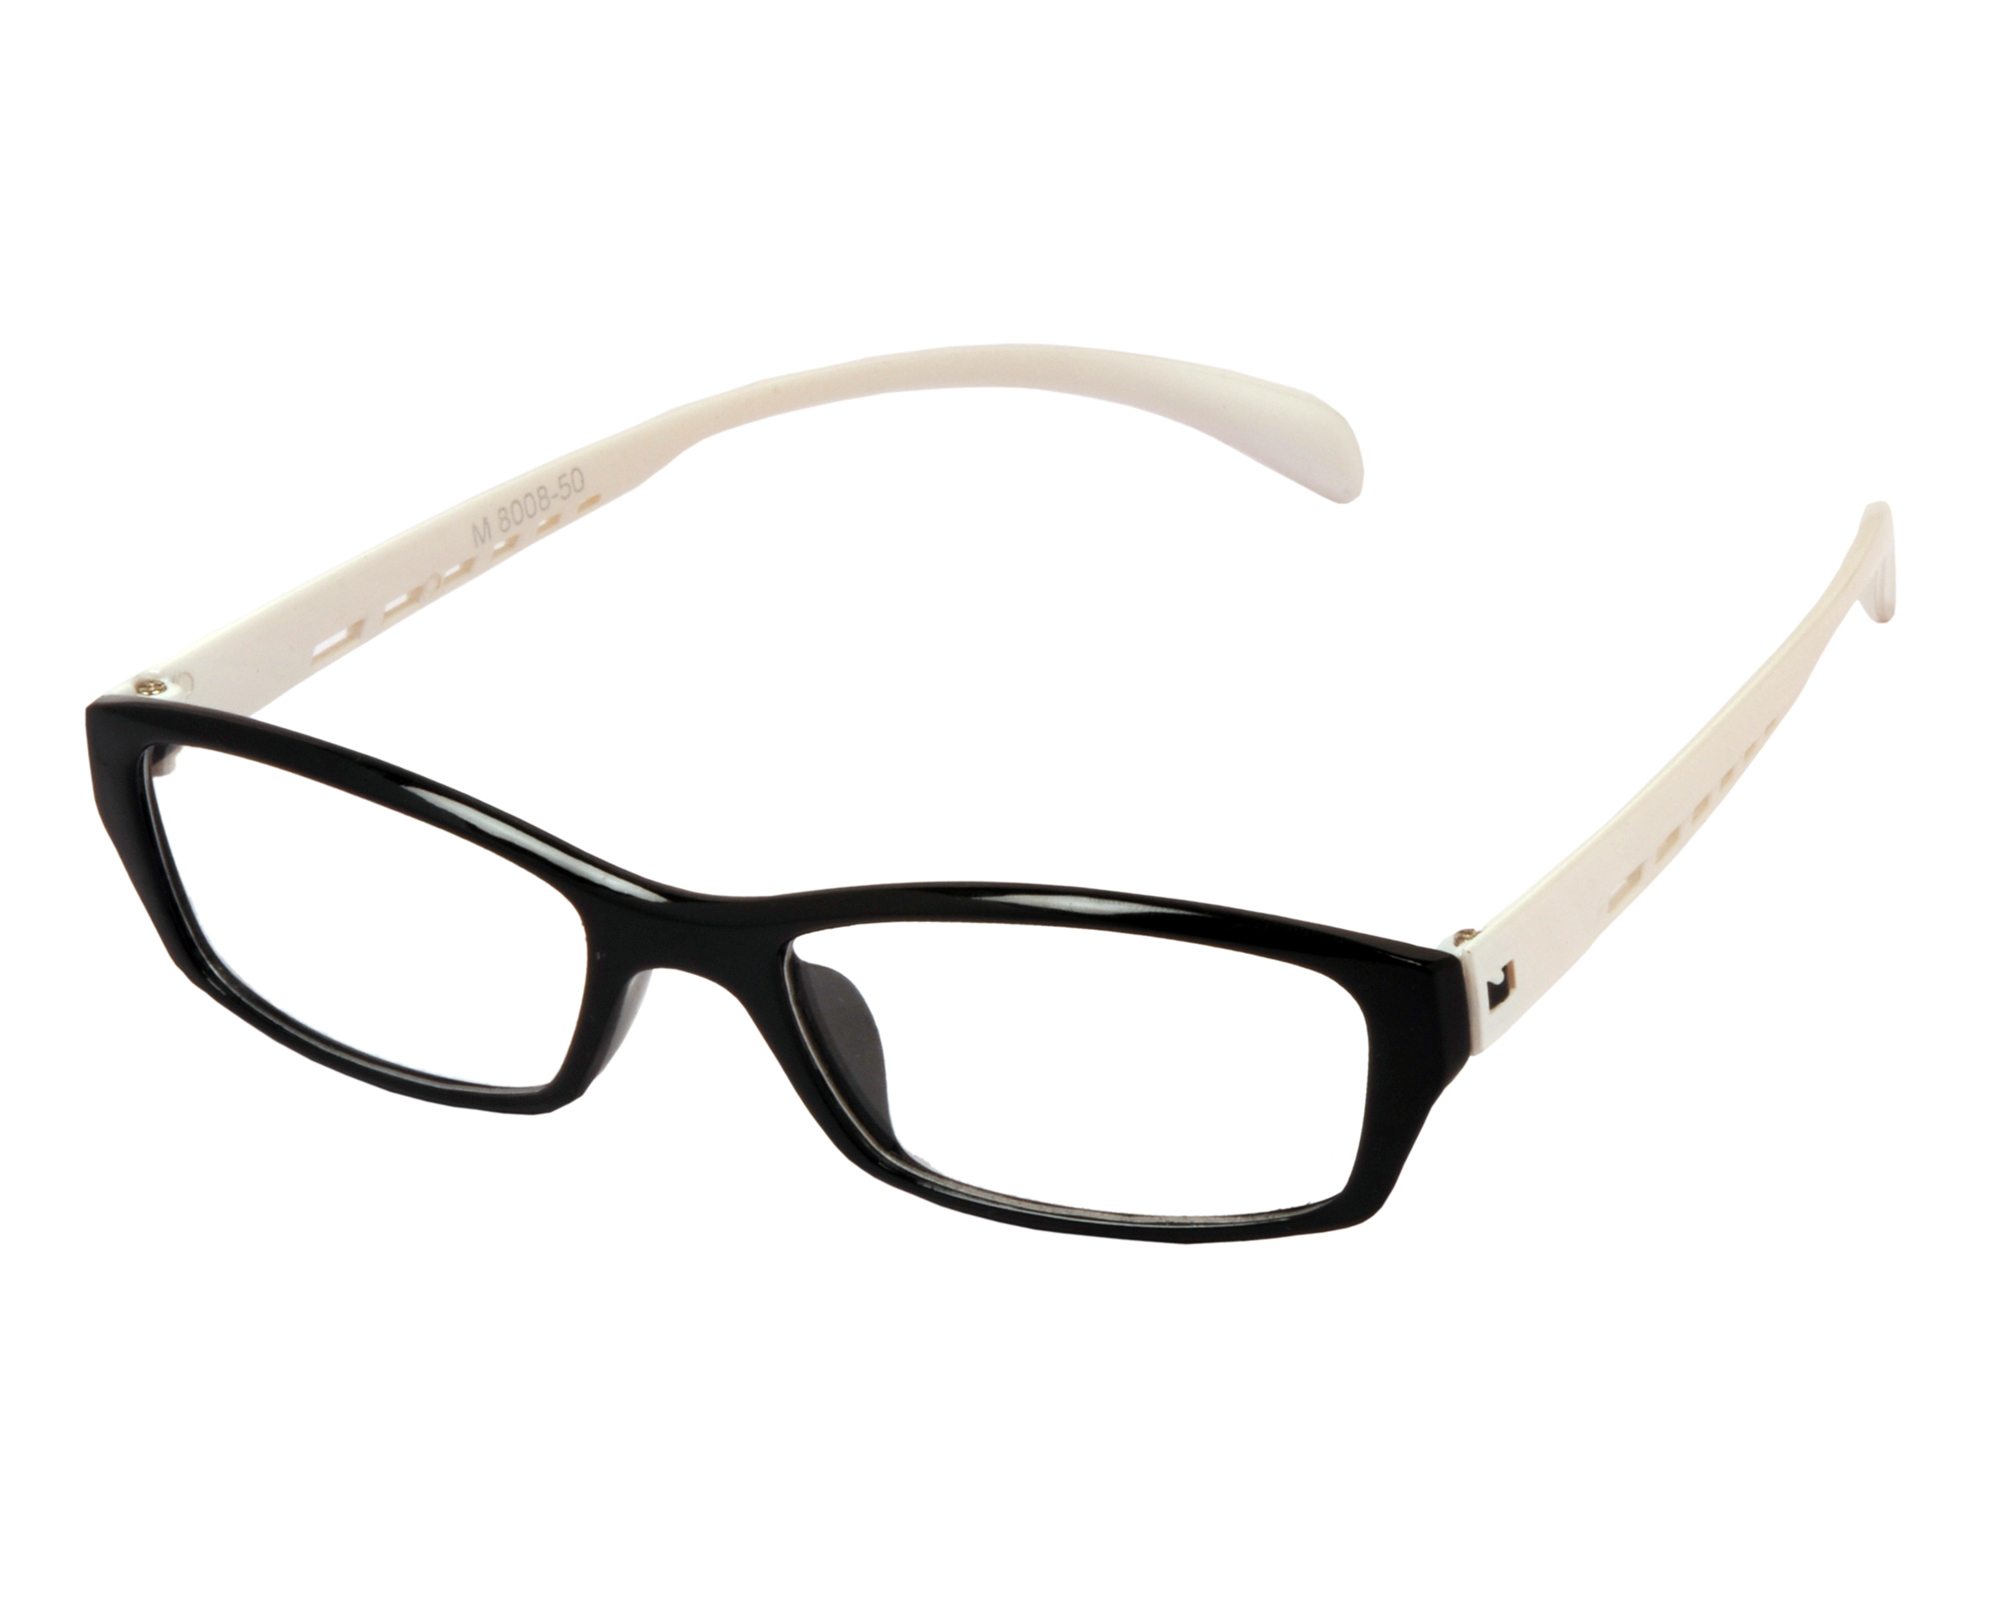 Eyeglasses White Frame : Aoito Black & White Spectacles Frames Eyeglasses for Men ...